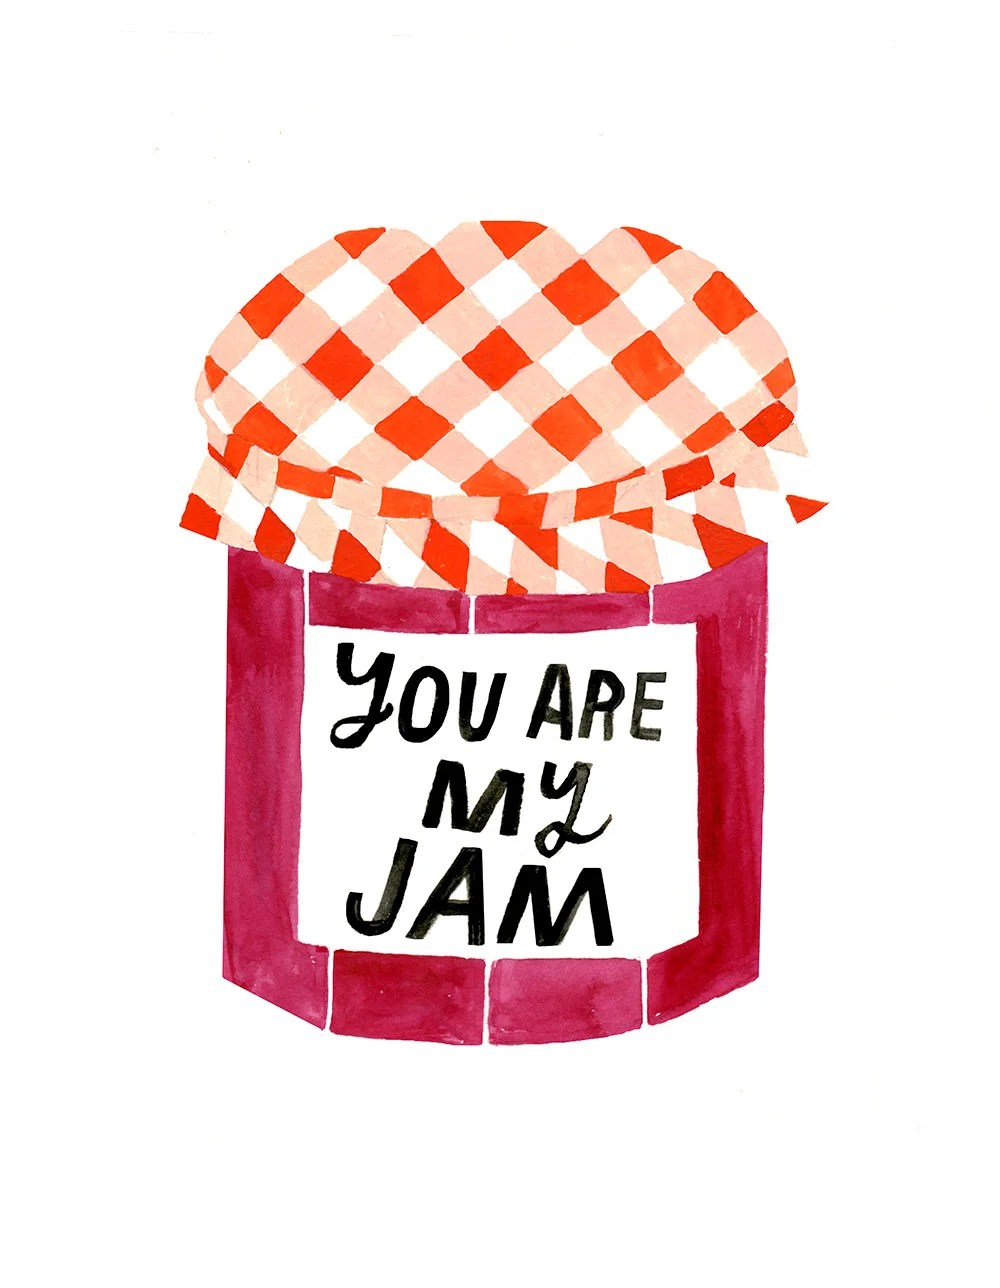 Amore Poster Amore Kunstdruck Love Poster Typografie Poster Avec You Are My Jam Art Print